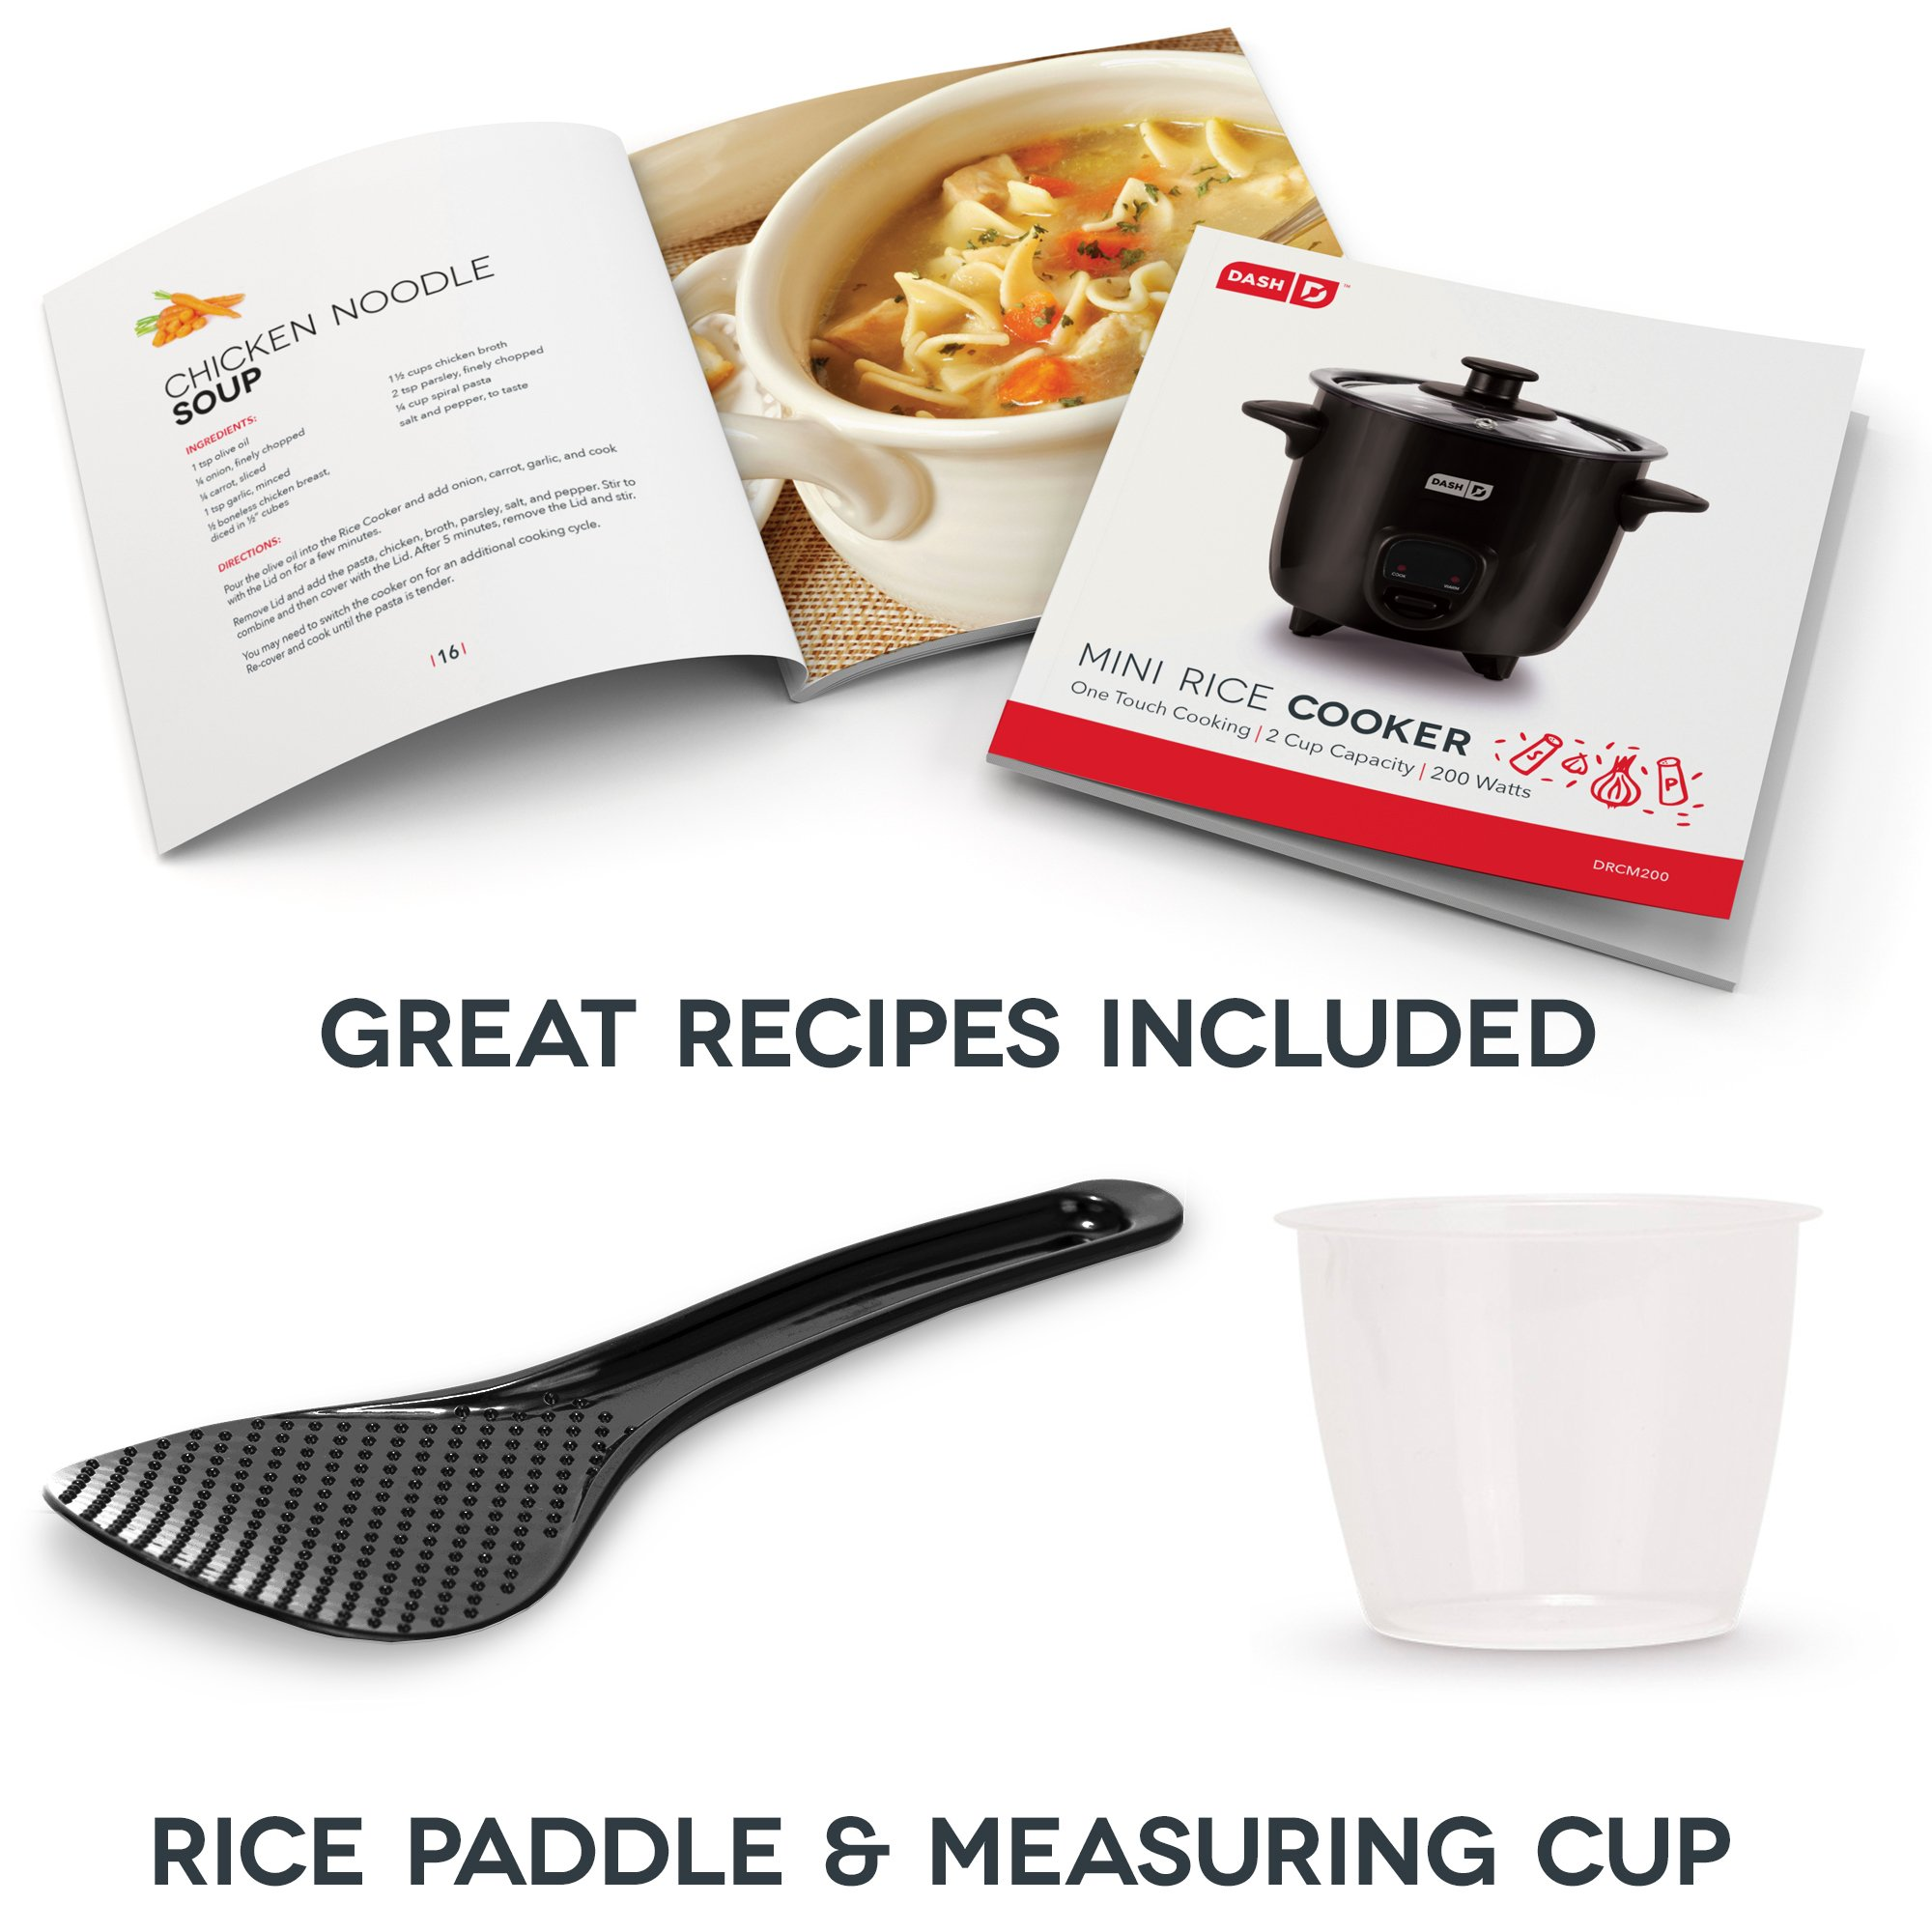 Dash DRCM200BK Mini Rice Cooker Steamer with Removable Nonstick Pot, Keep Warm Function and Recipe Guide -, 2 Cups, Great for Soups, Stews, Grains and Oatmeal -, Black by Dash (Image #6)